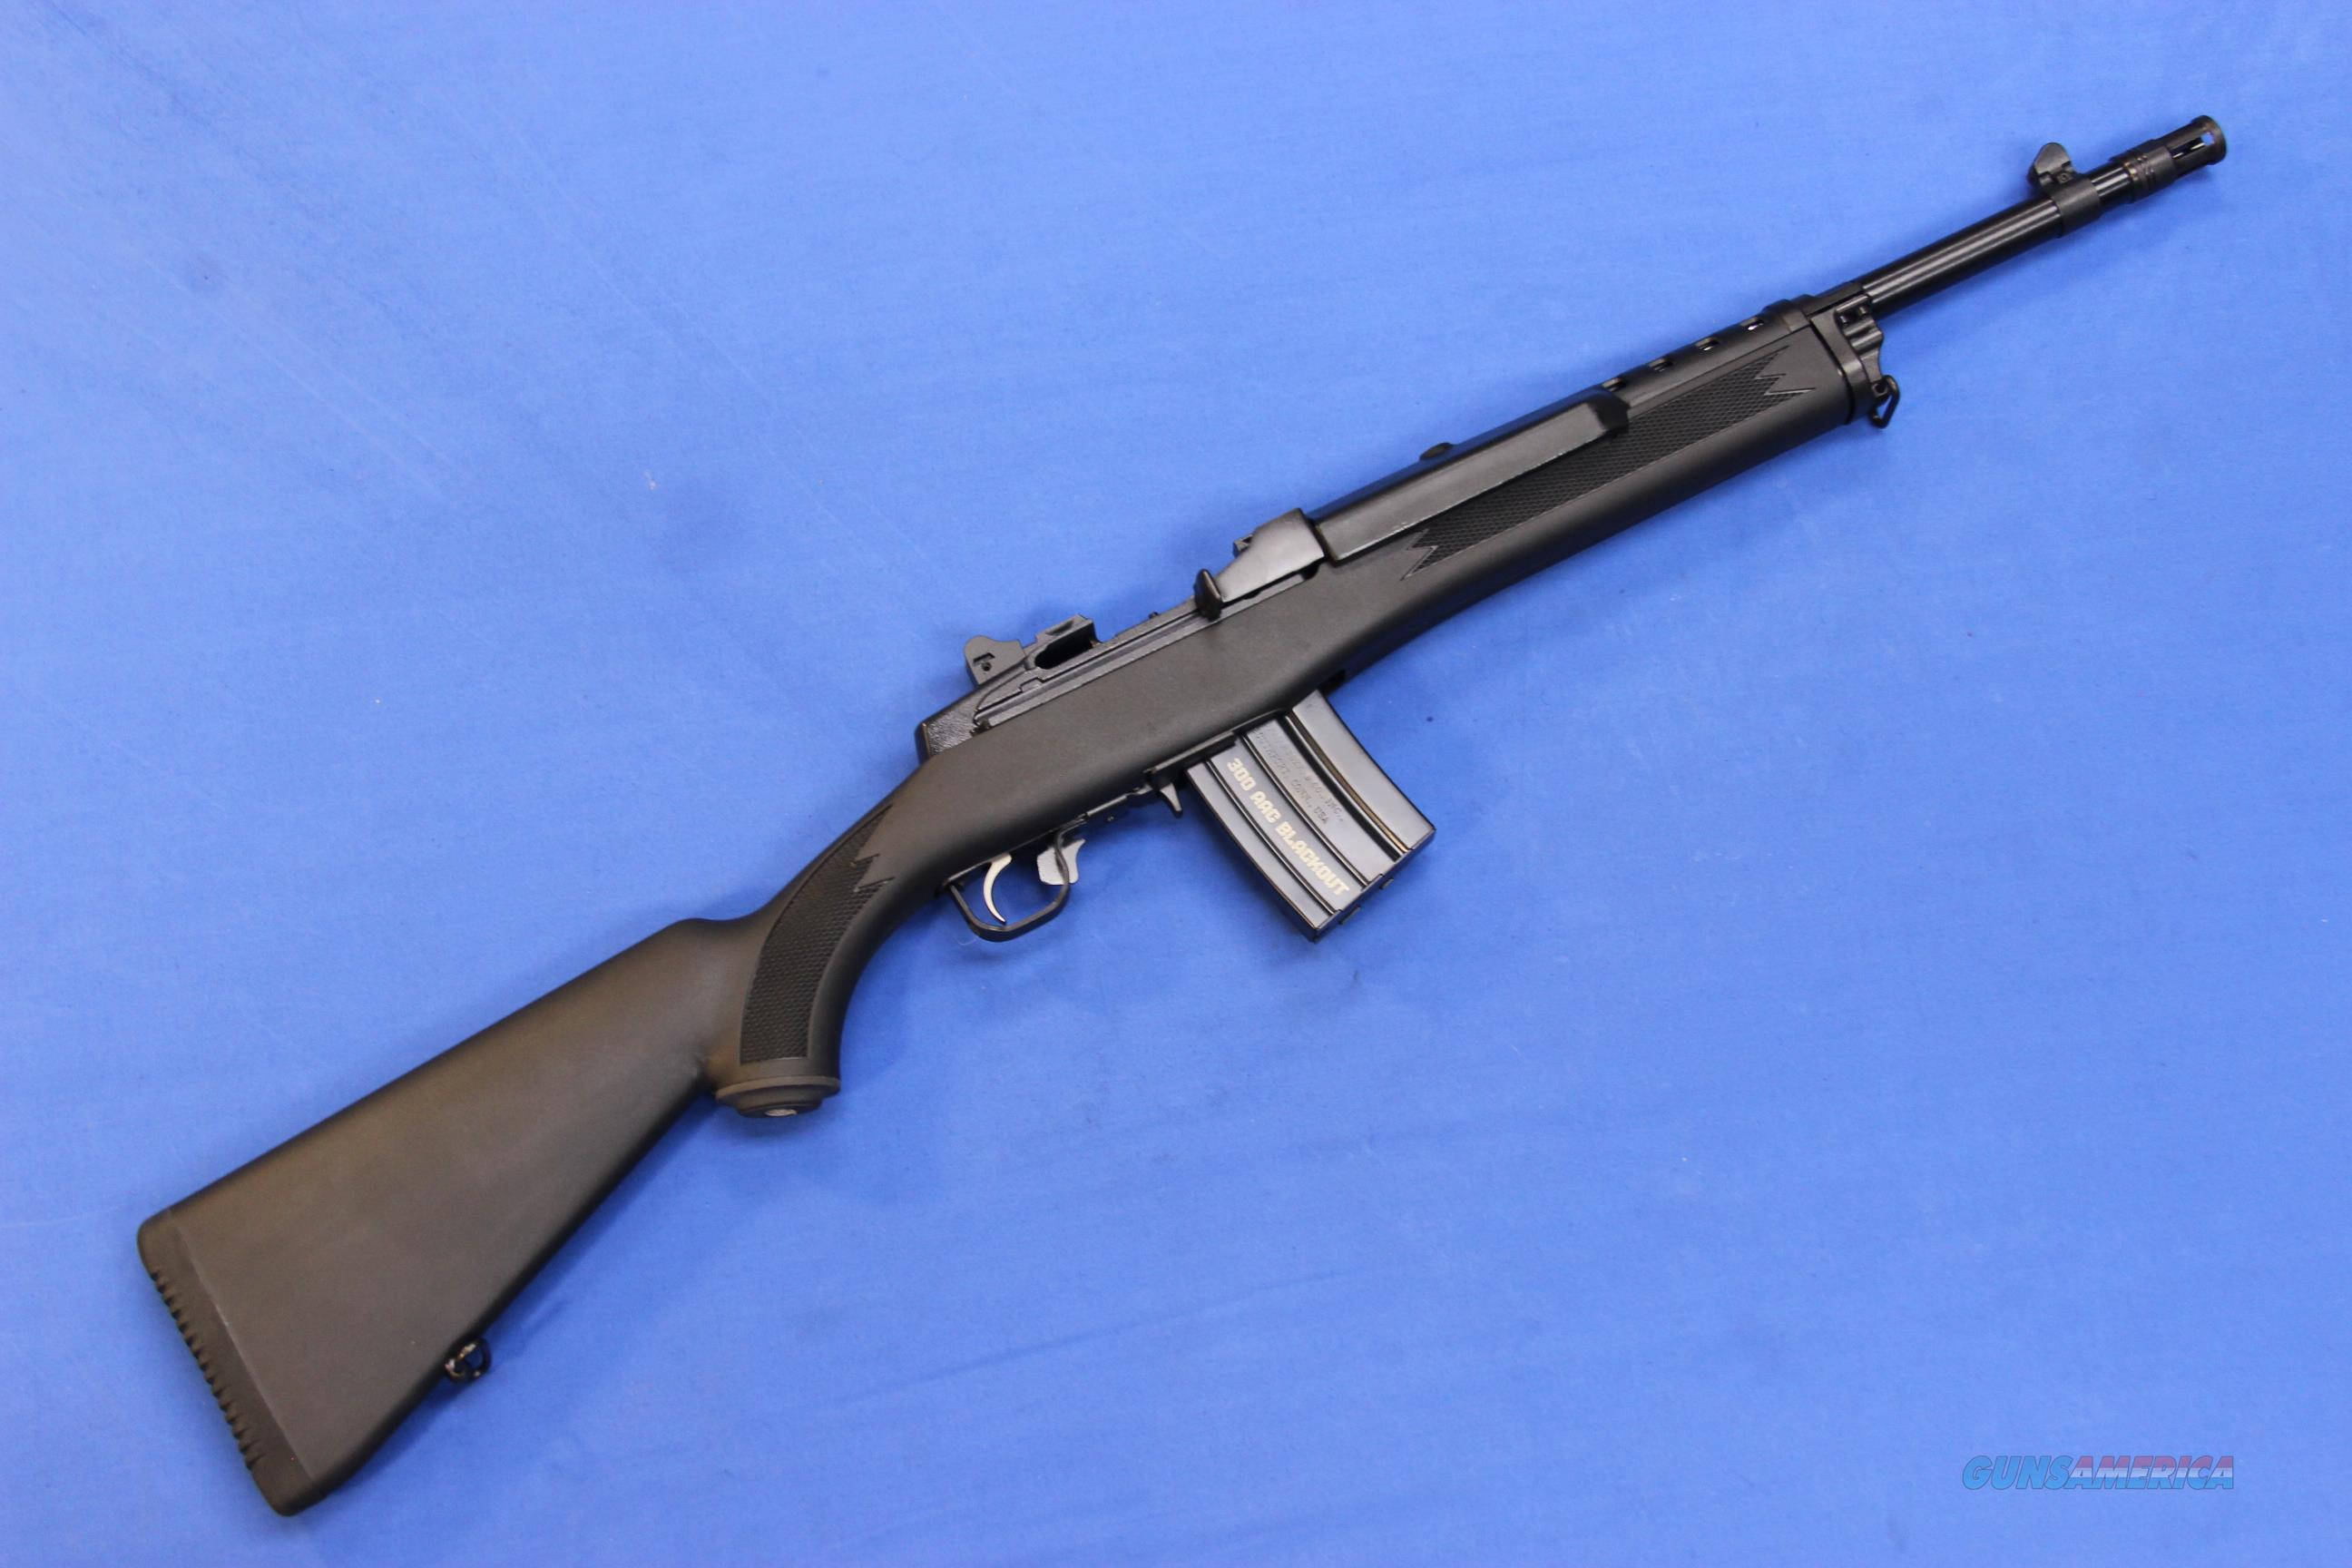 RUGER MINI-14 .300 AAC BLACKOUT - NEW!  Guns > Rifles > Ruger Rifles > Mini-14 Type